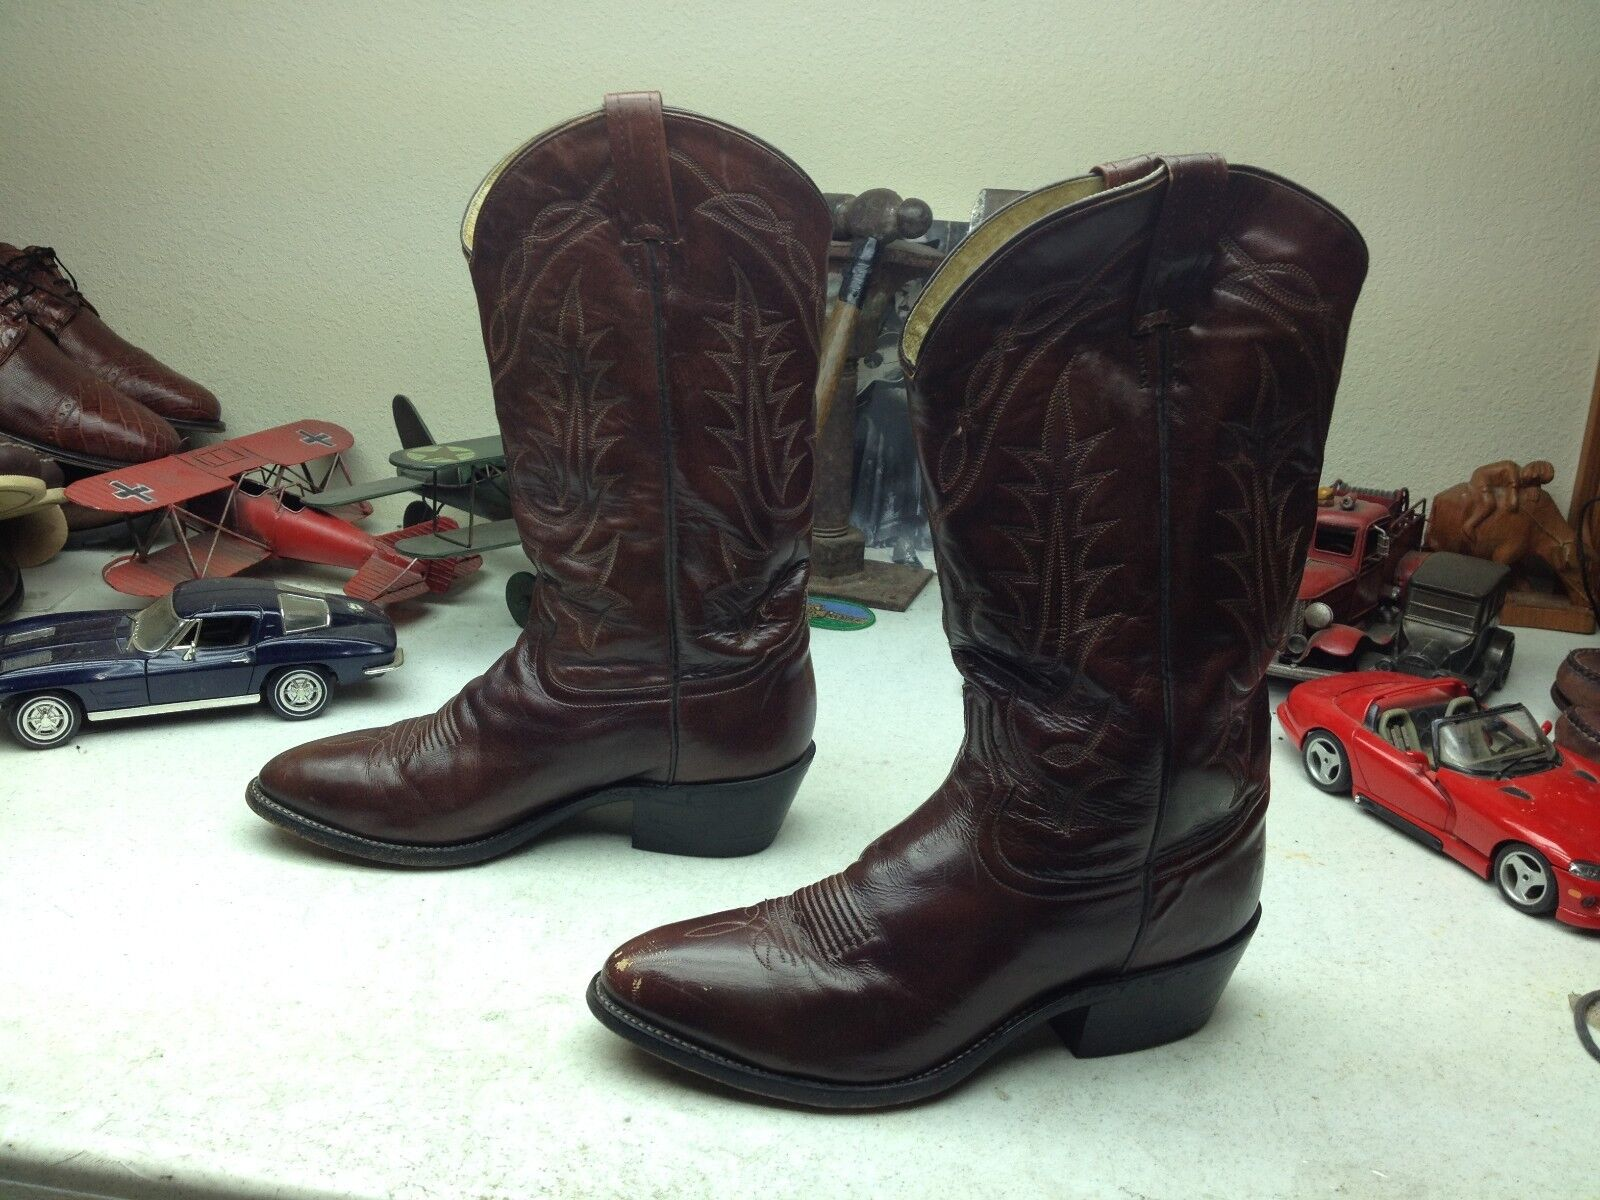 DISTRESSED IMPERFECT TONY LAMA USA BROWN LEATHER WESTERN COWBOY BOOTS 9.5 D